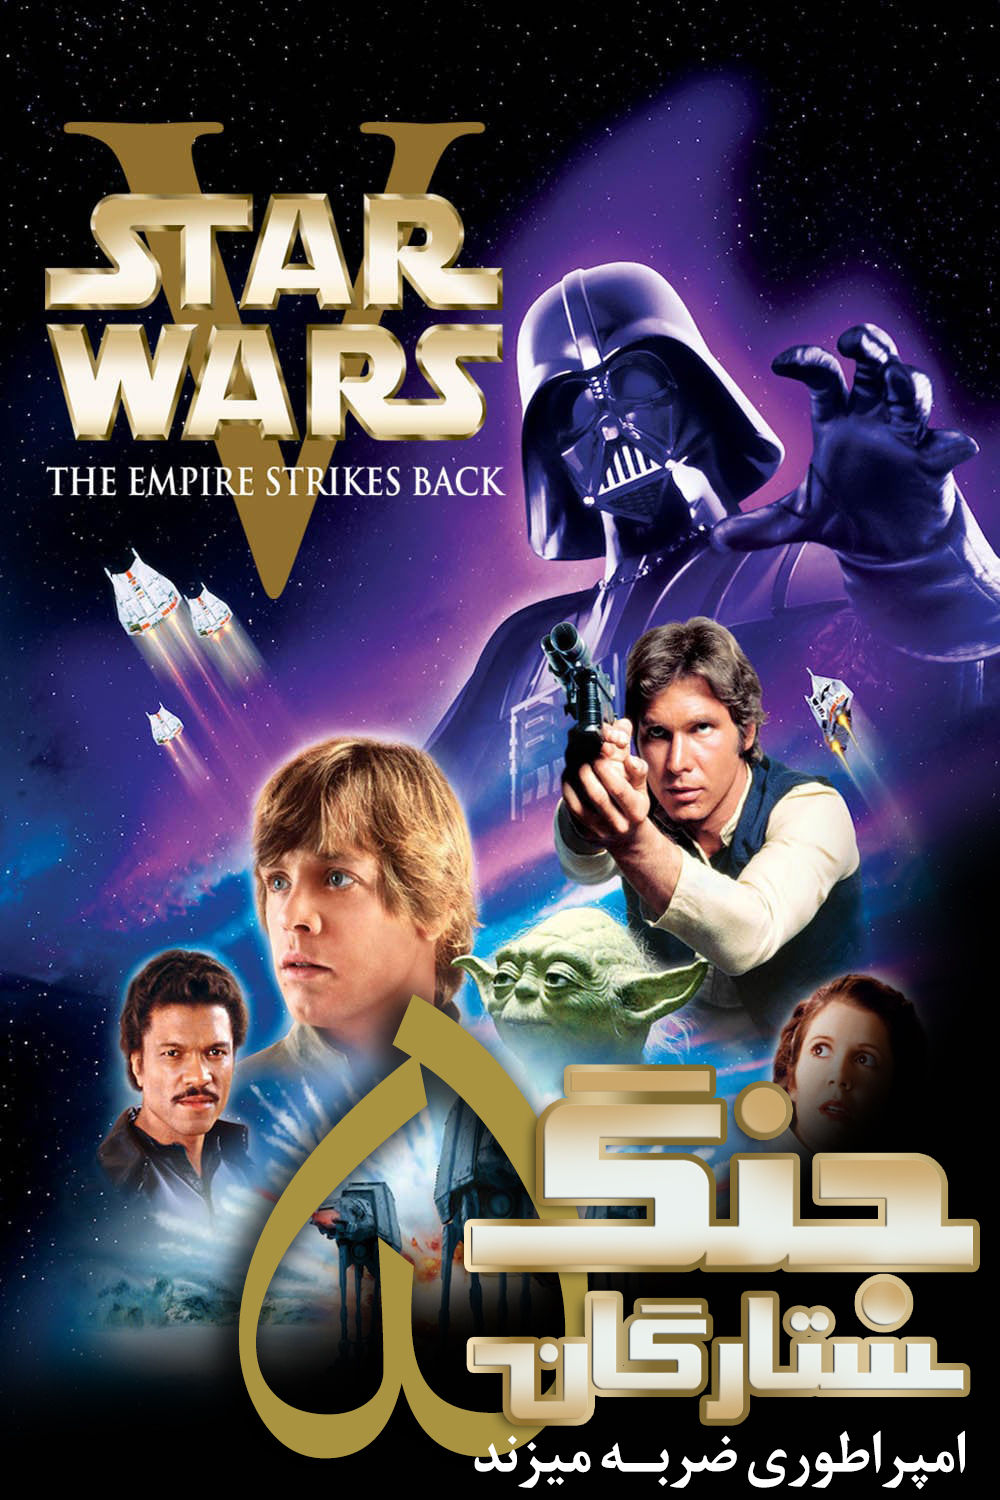 دانلود فیلم Star Wars Episode V The Empire Strikes Back 1980